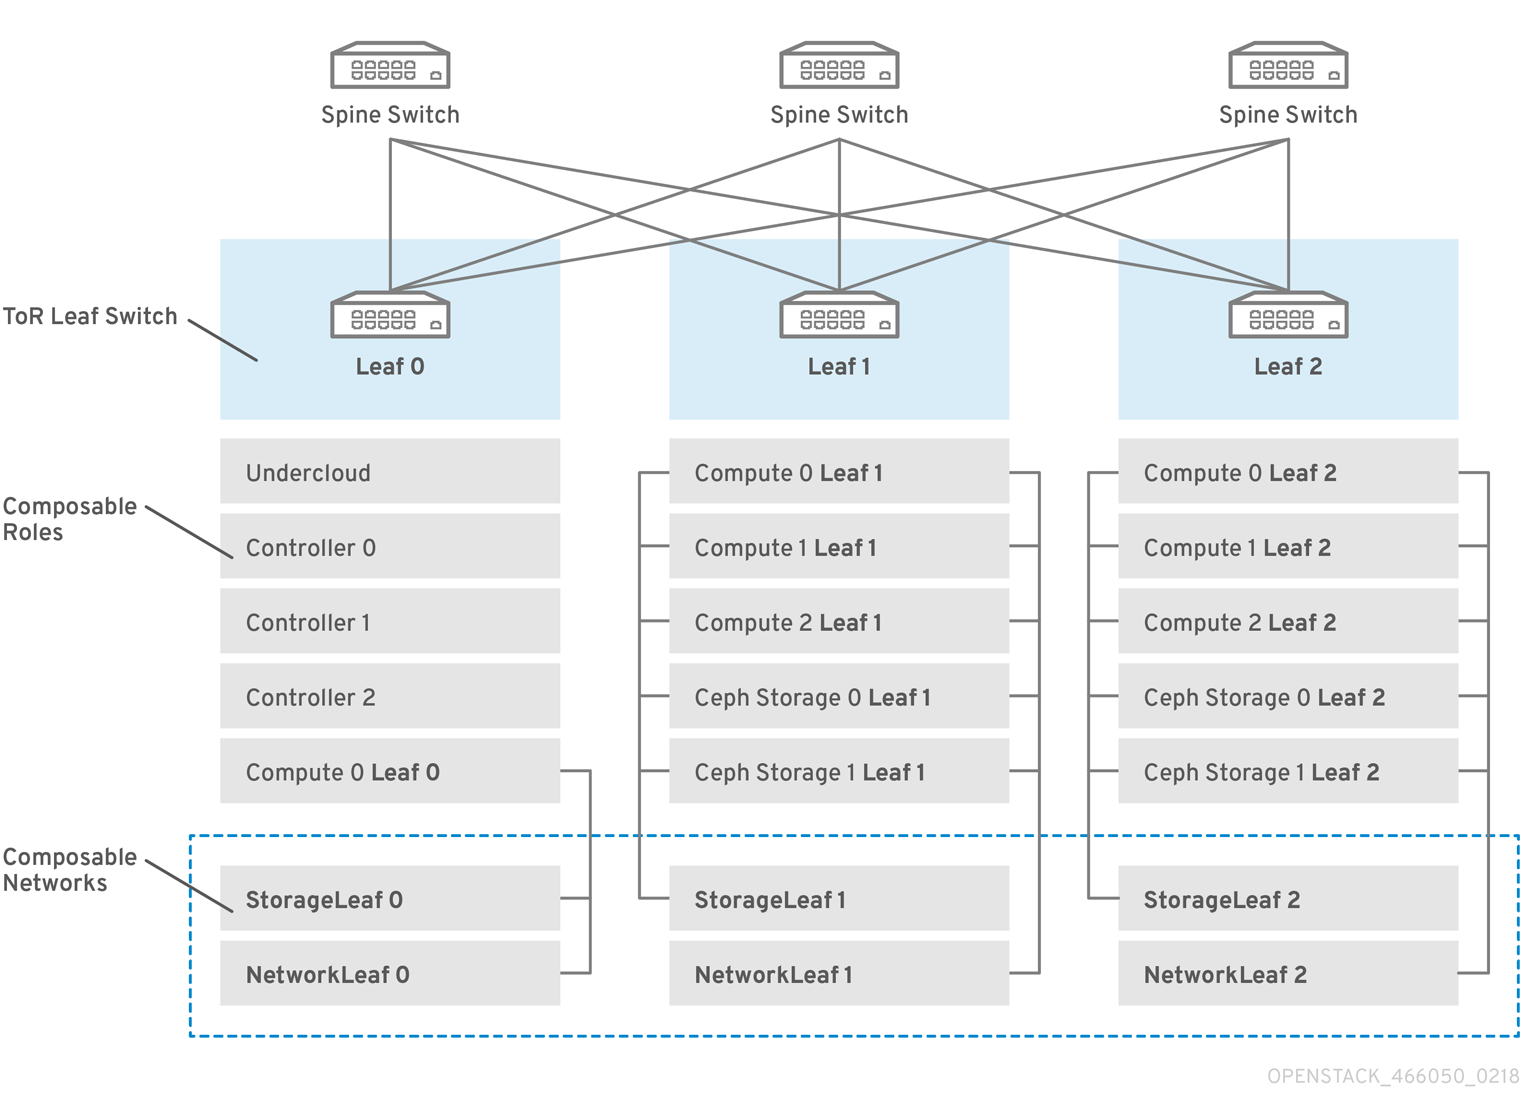 OpenStack Spine Leaf 466050 0218 routed